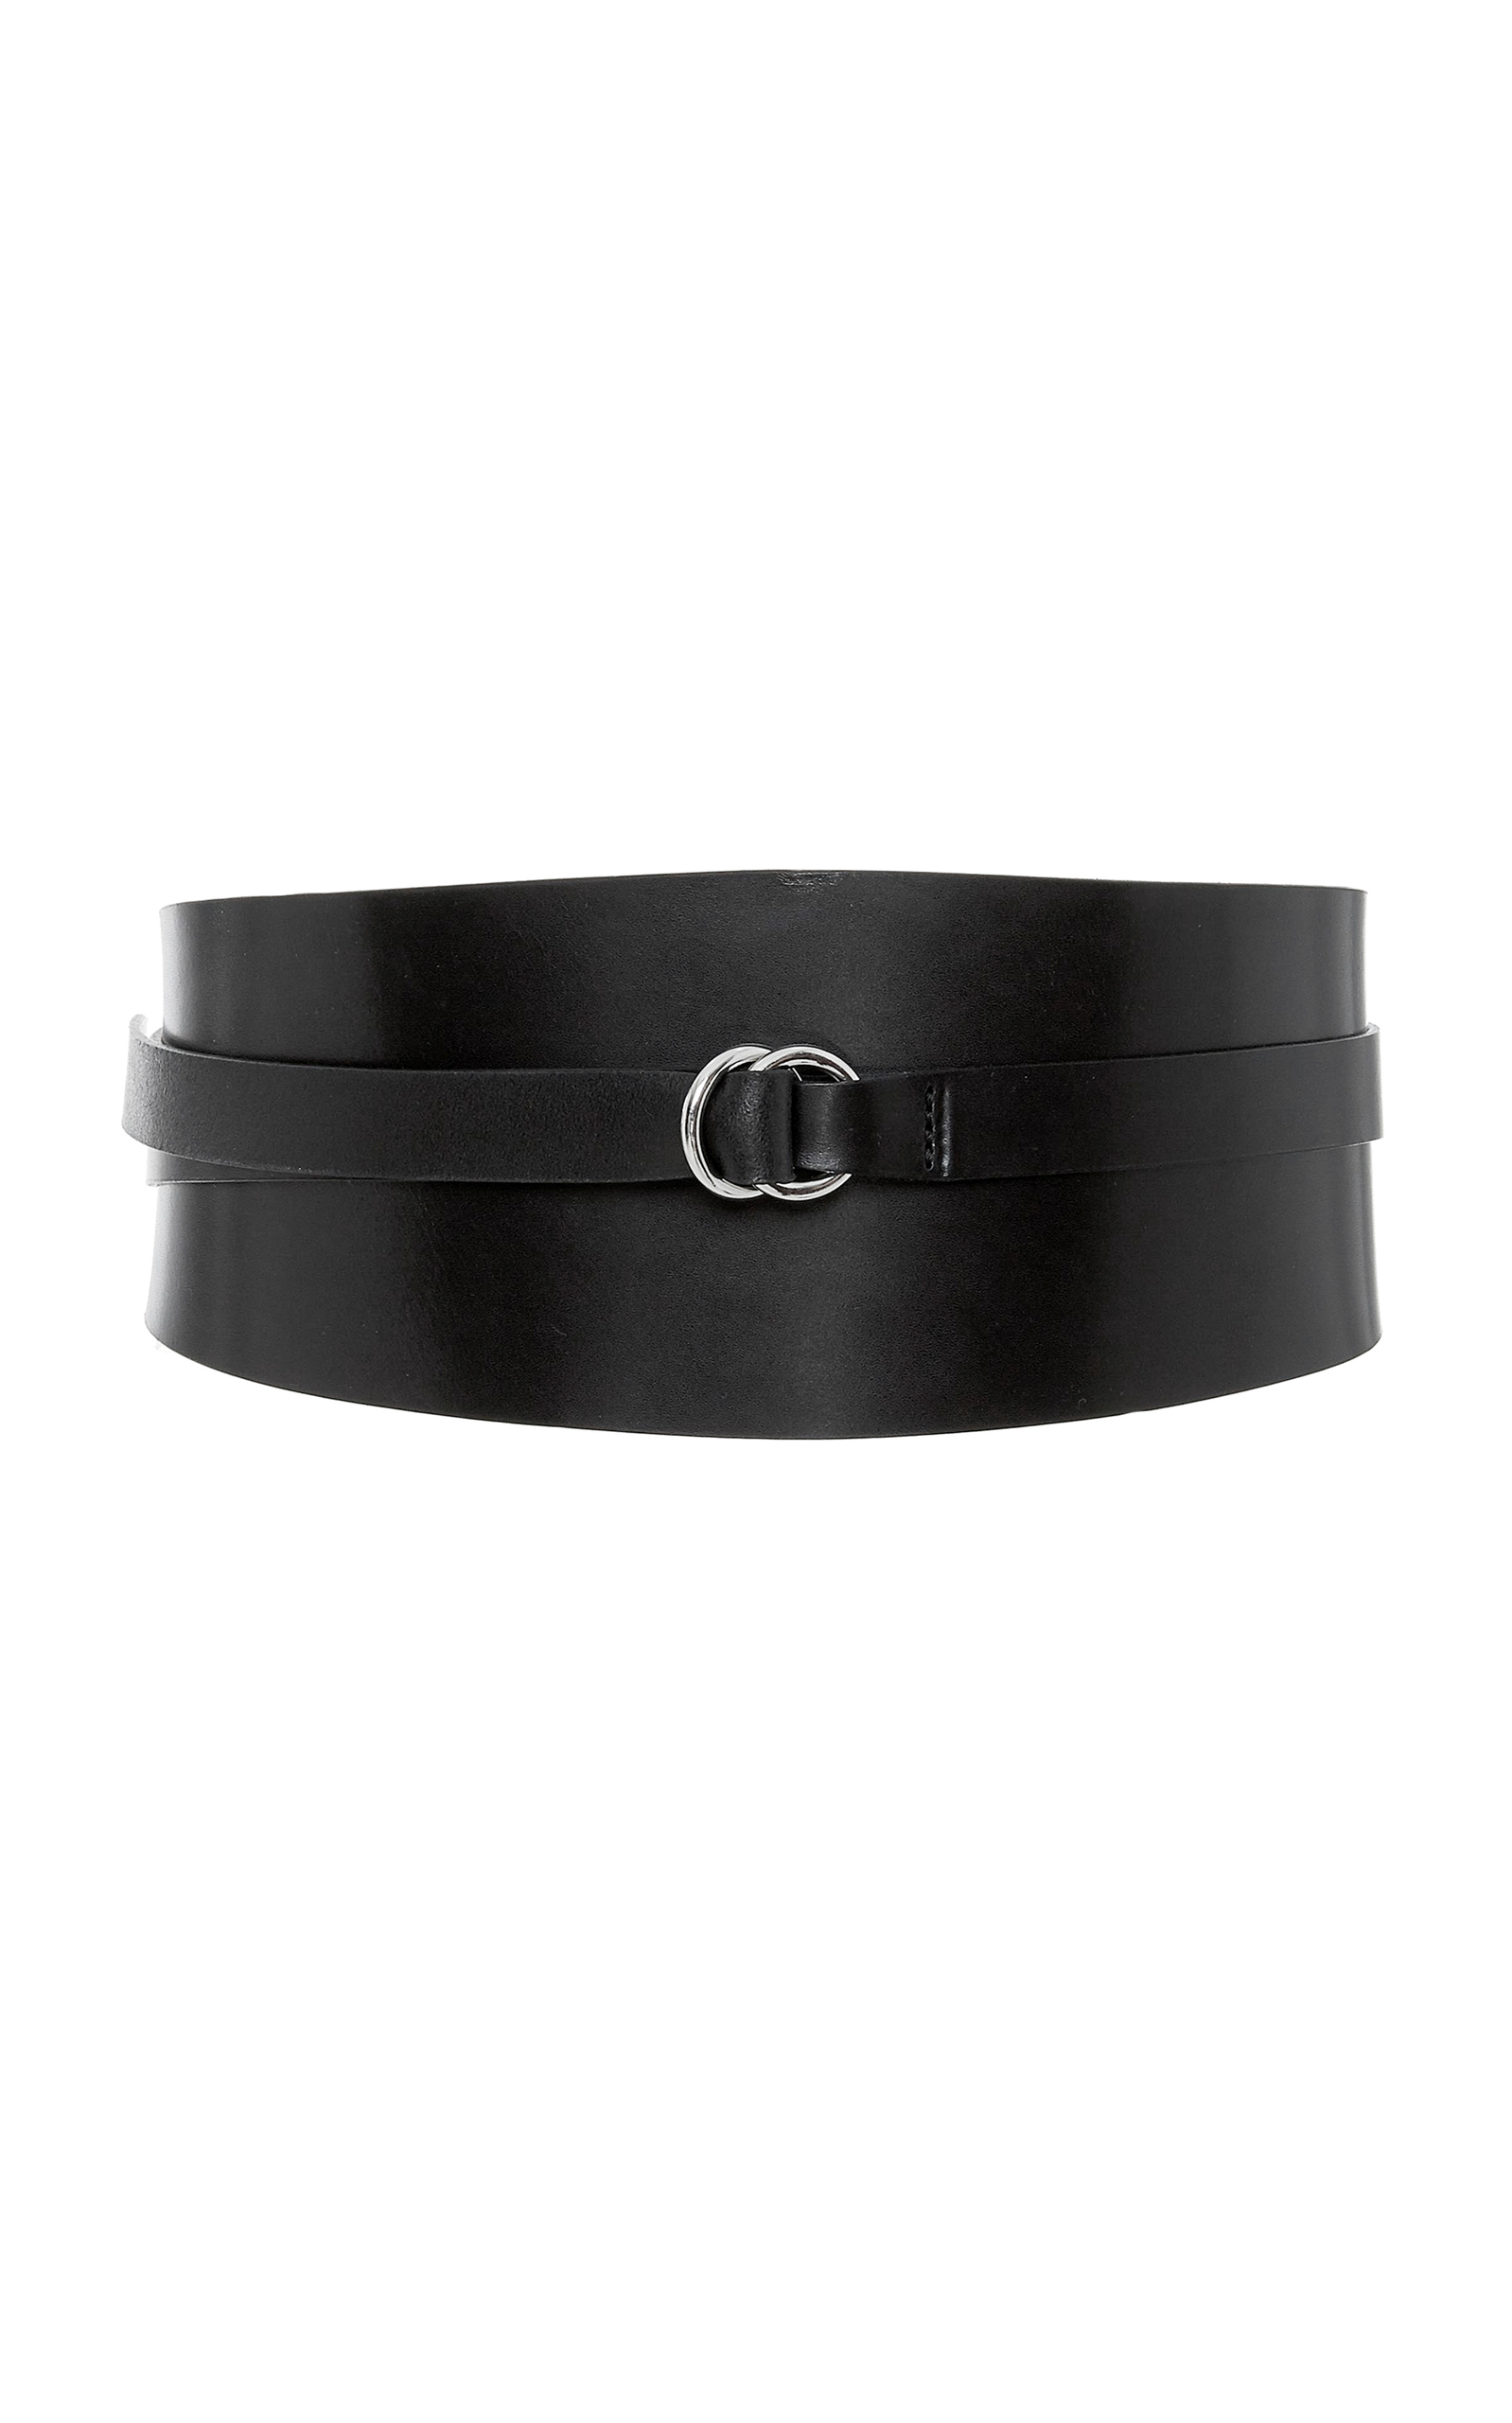 Wide leather wraparound belt